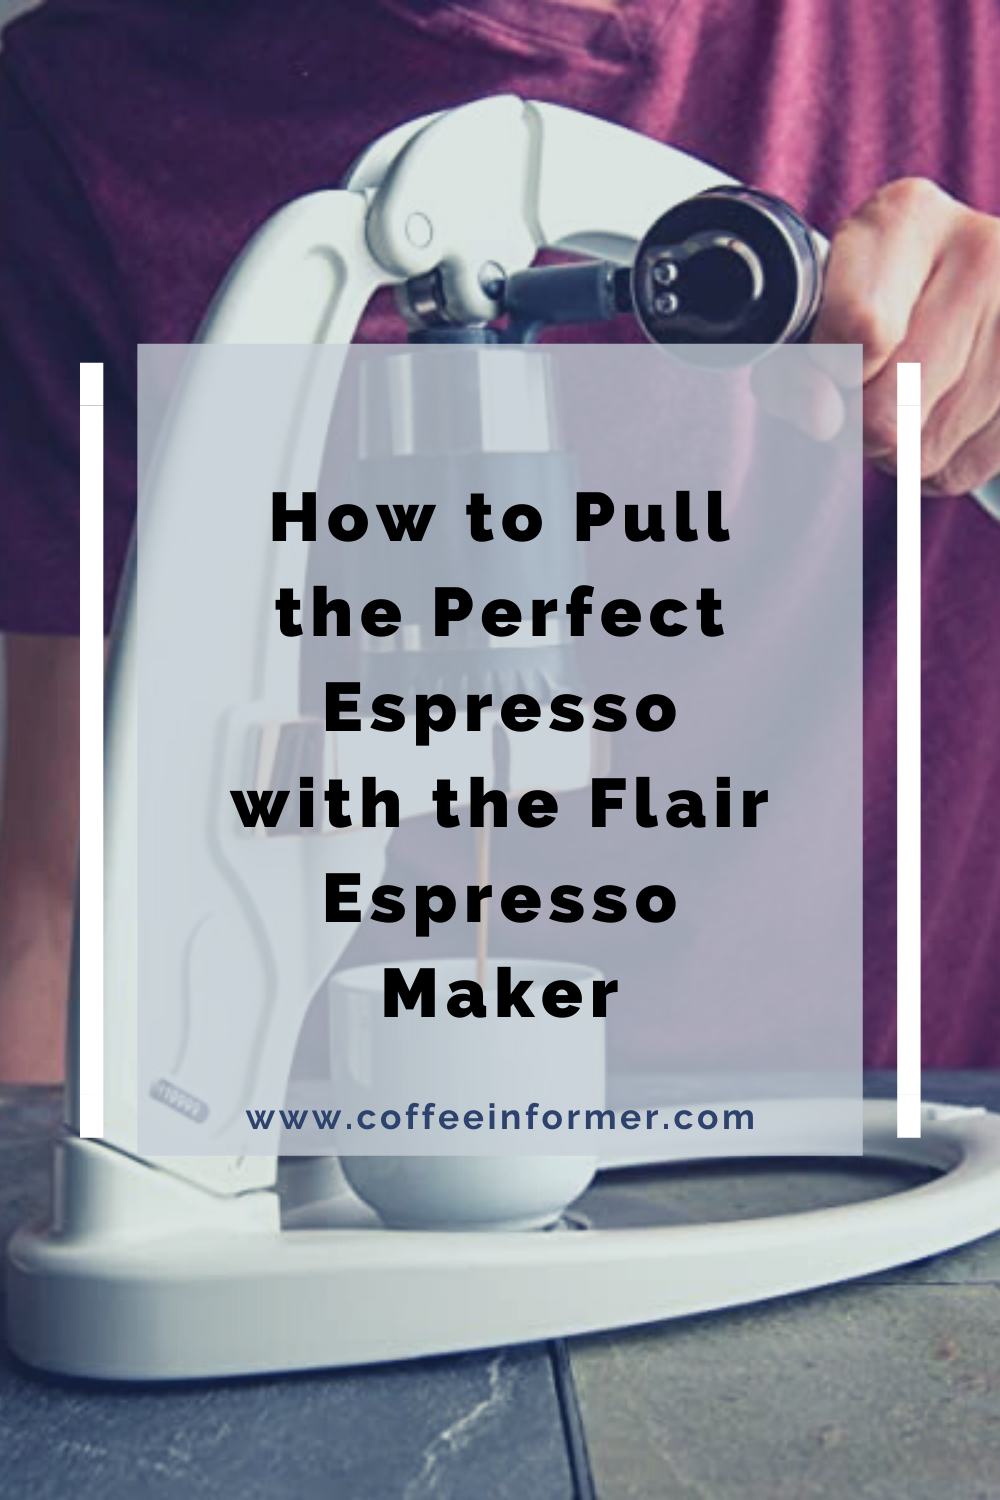 How to Pull the Perfect Espresso with the Flair Espresso Maker